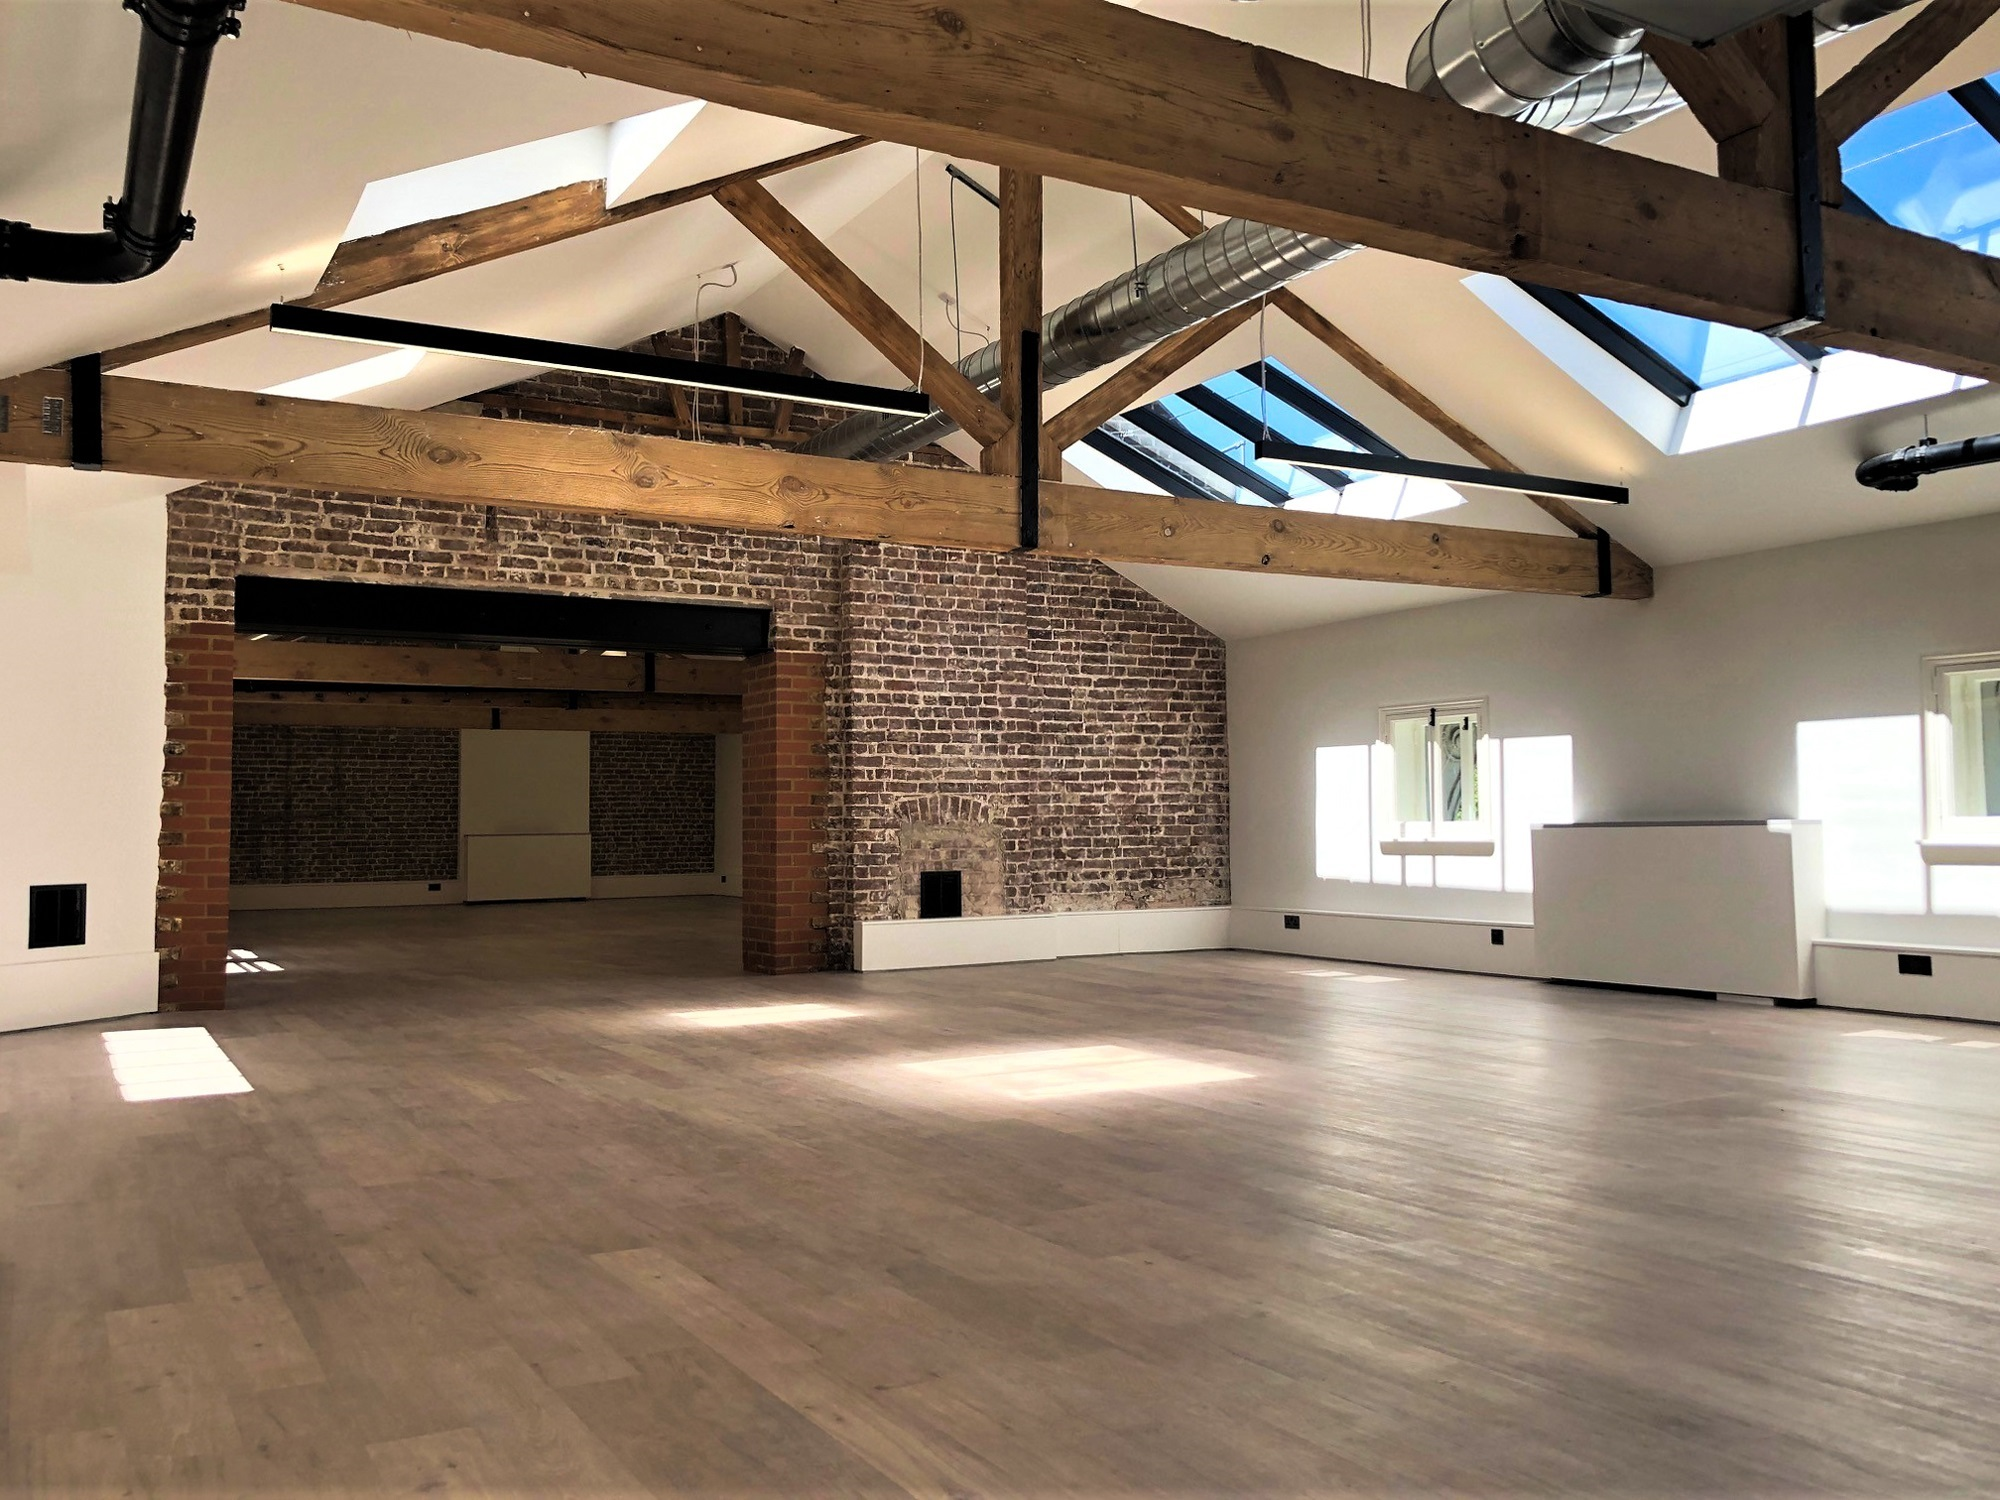 empty building with exposed wooden beams